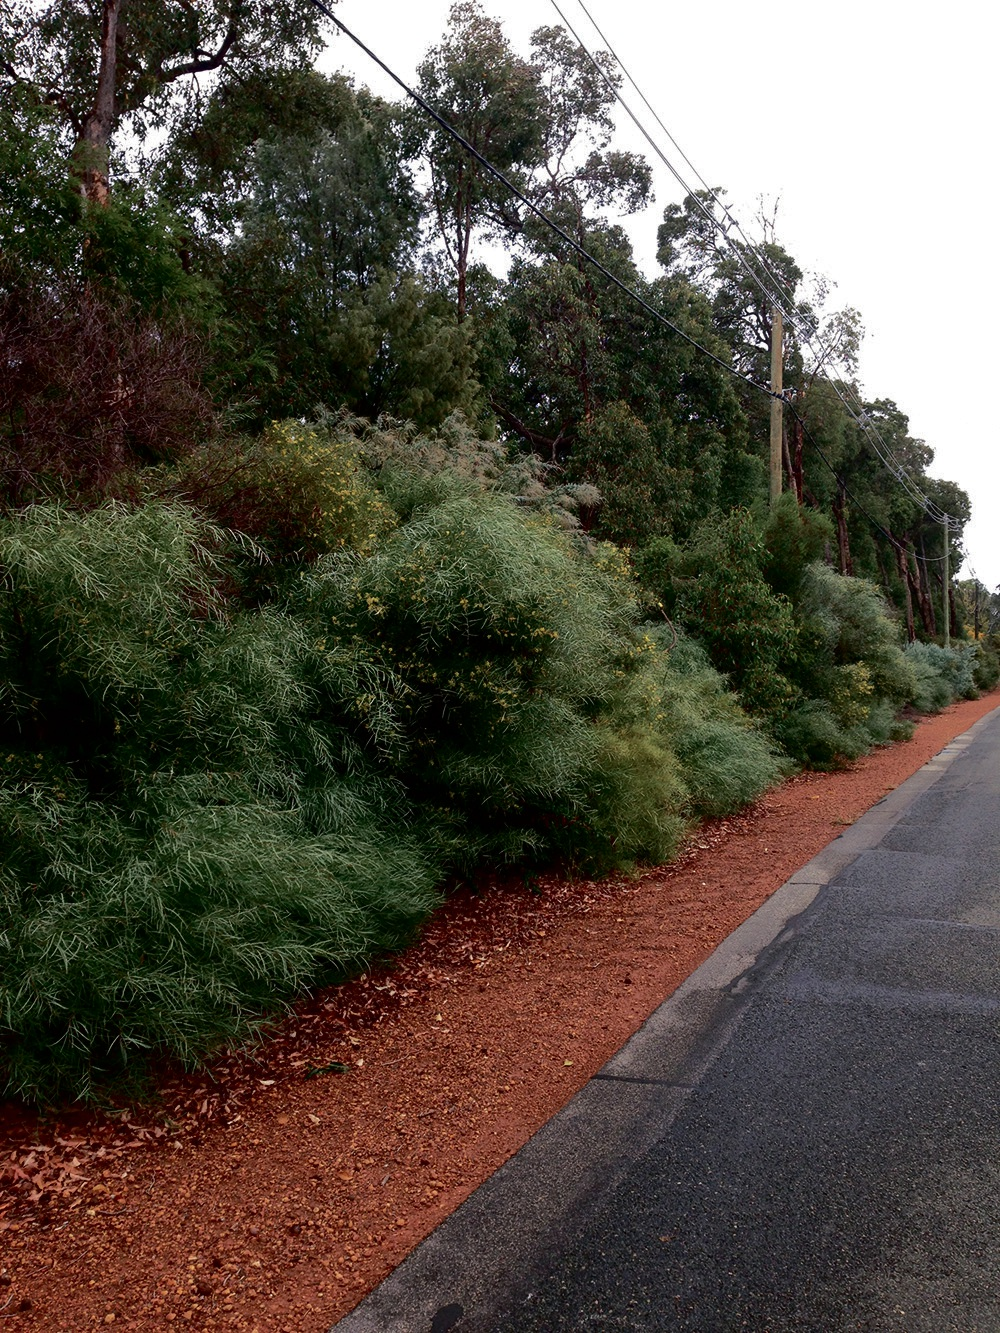 Acacia Iteaphylla or 'Flinders Ranges Wattle' is one of the targeted species in the Shire's weed removal.